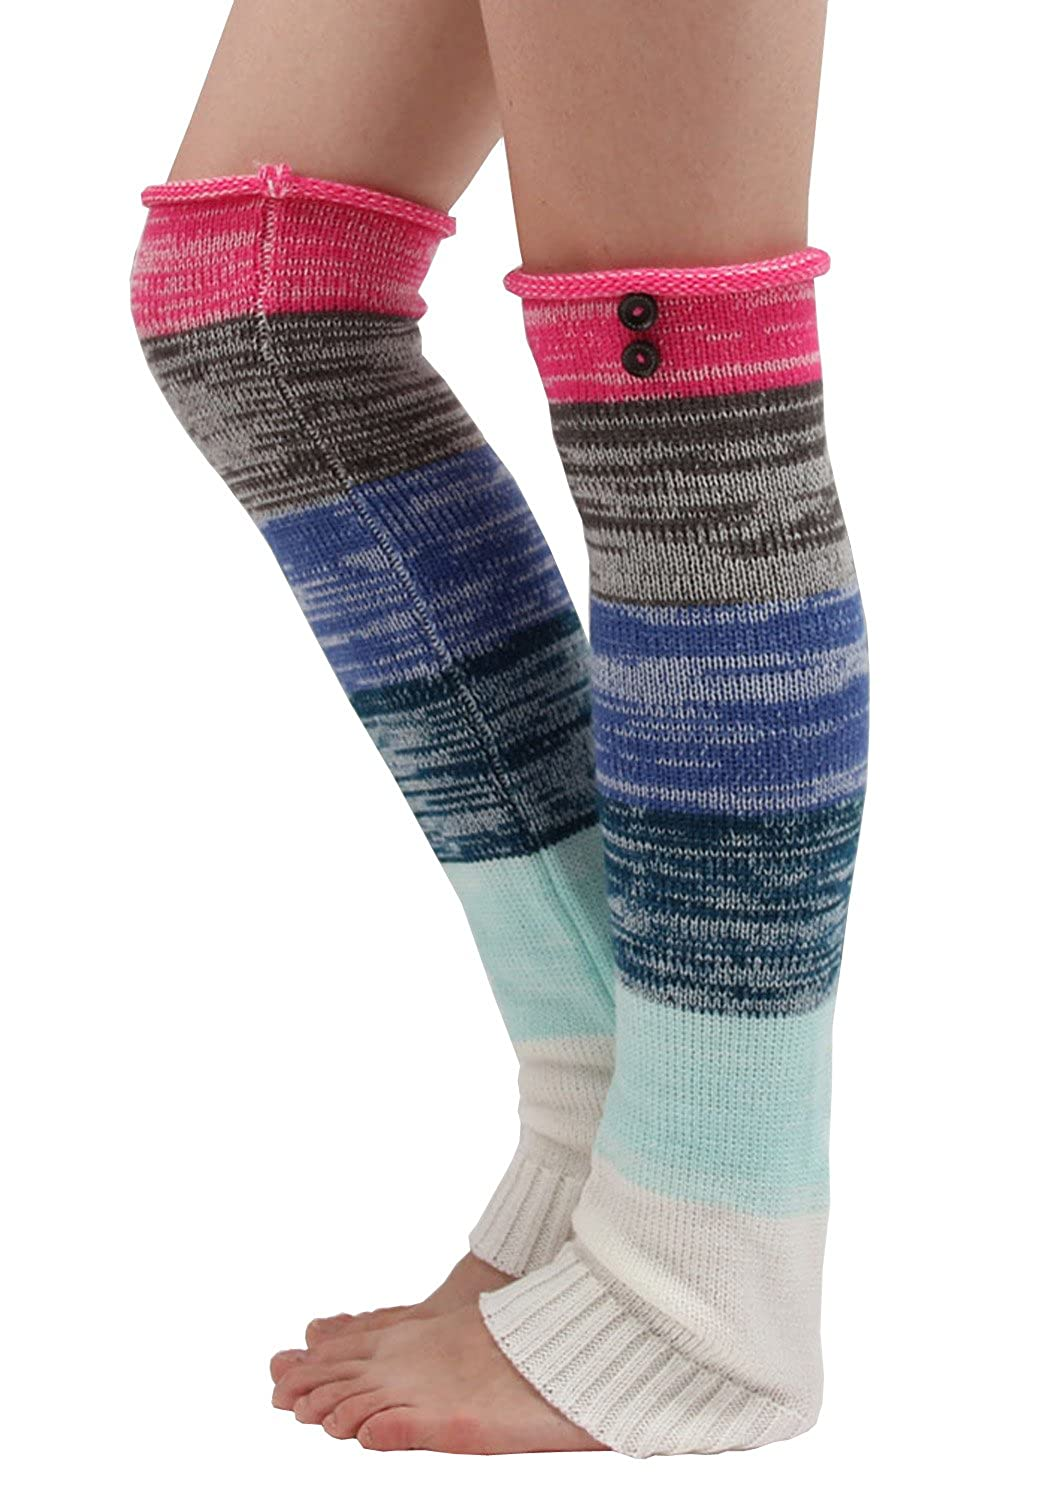 Boot Socks Leg Warmers Knee High Winter Legwarmers Women Crochet Socks Generic